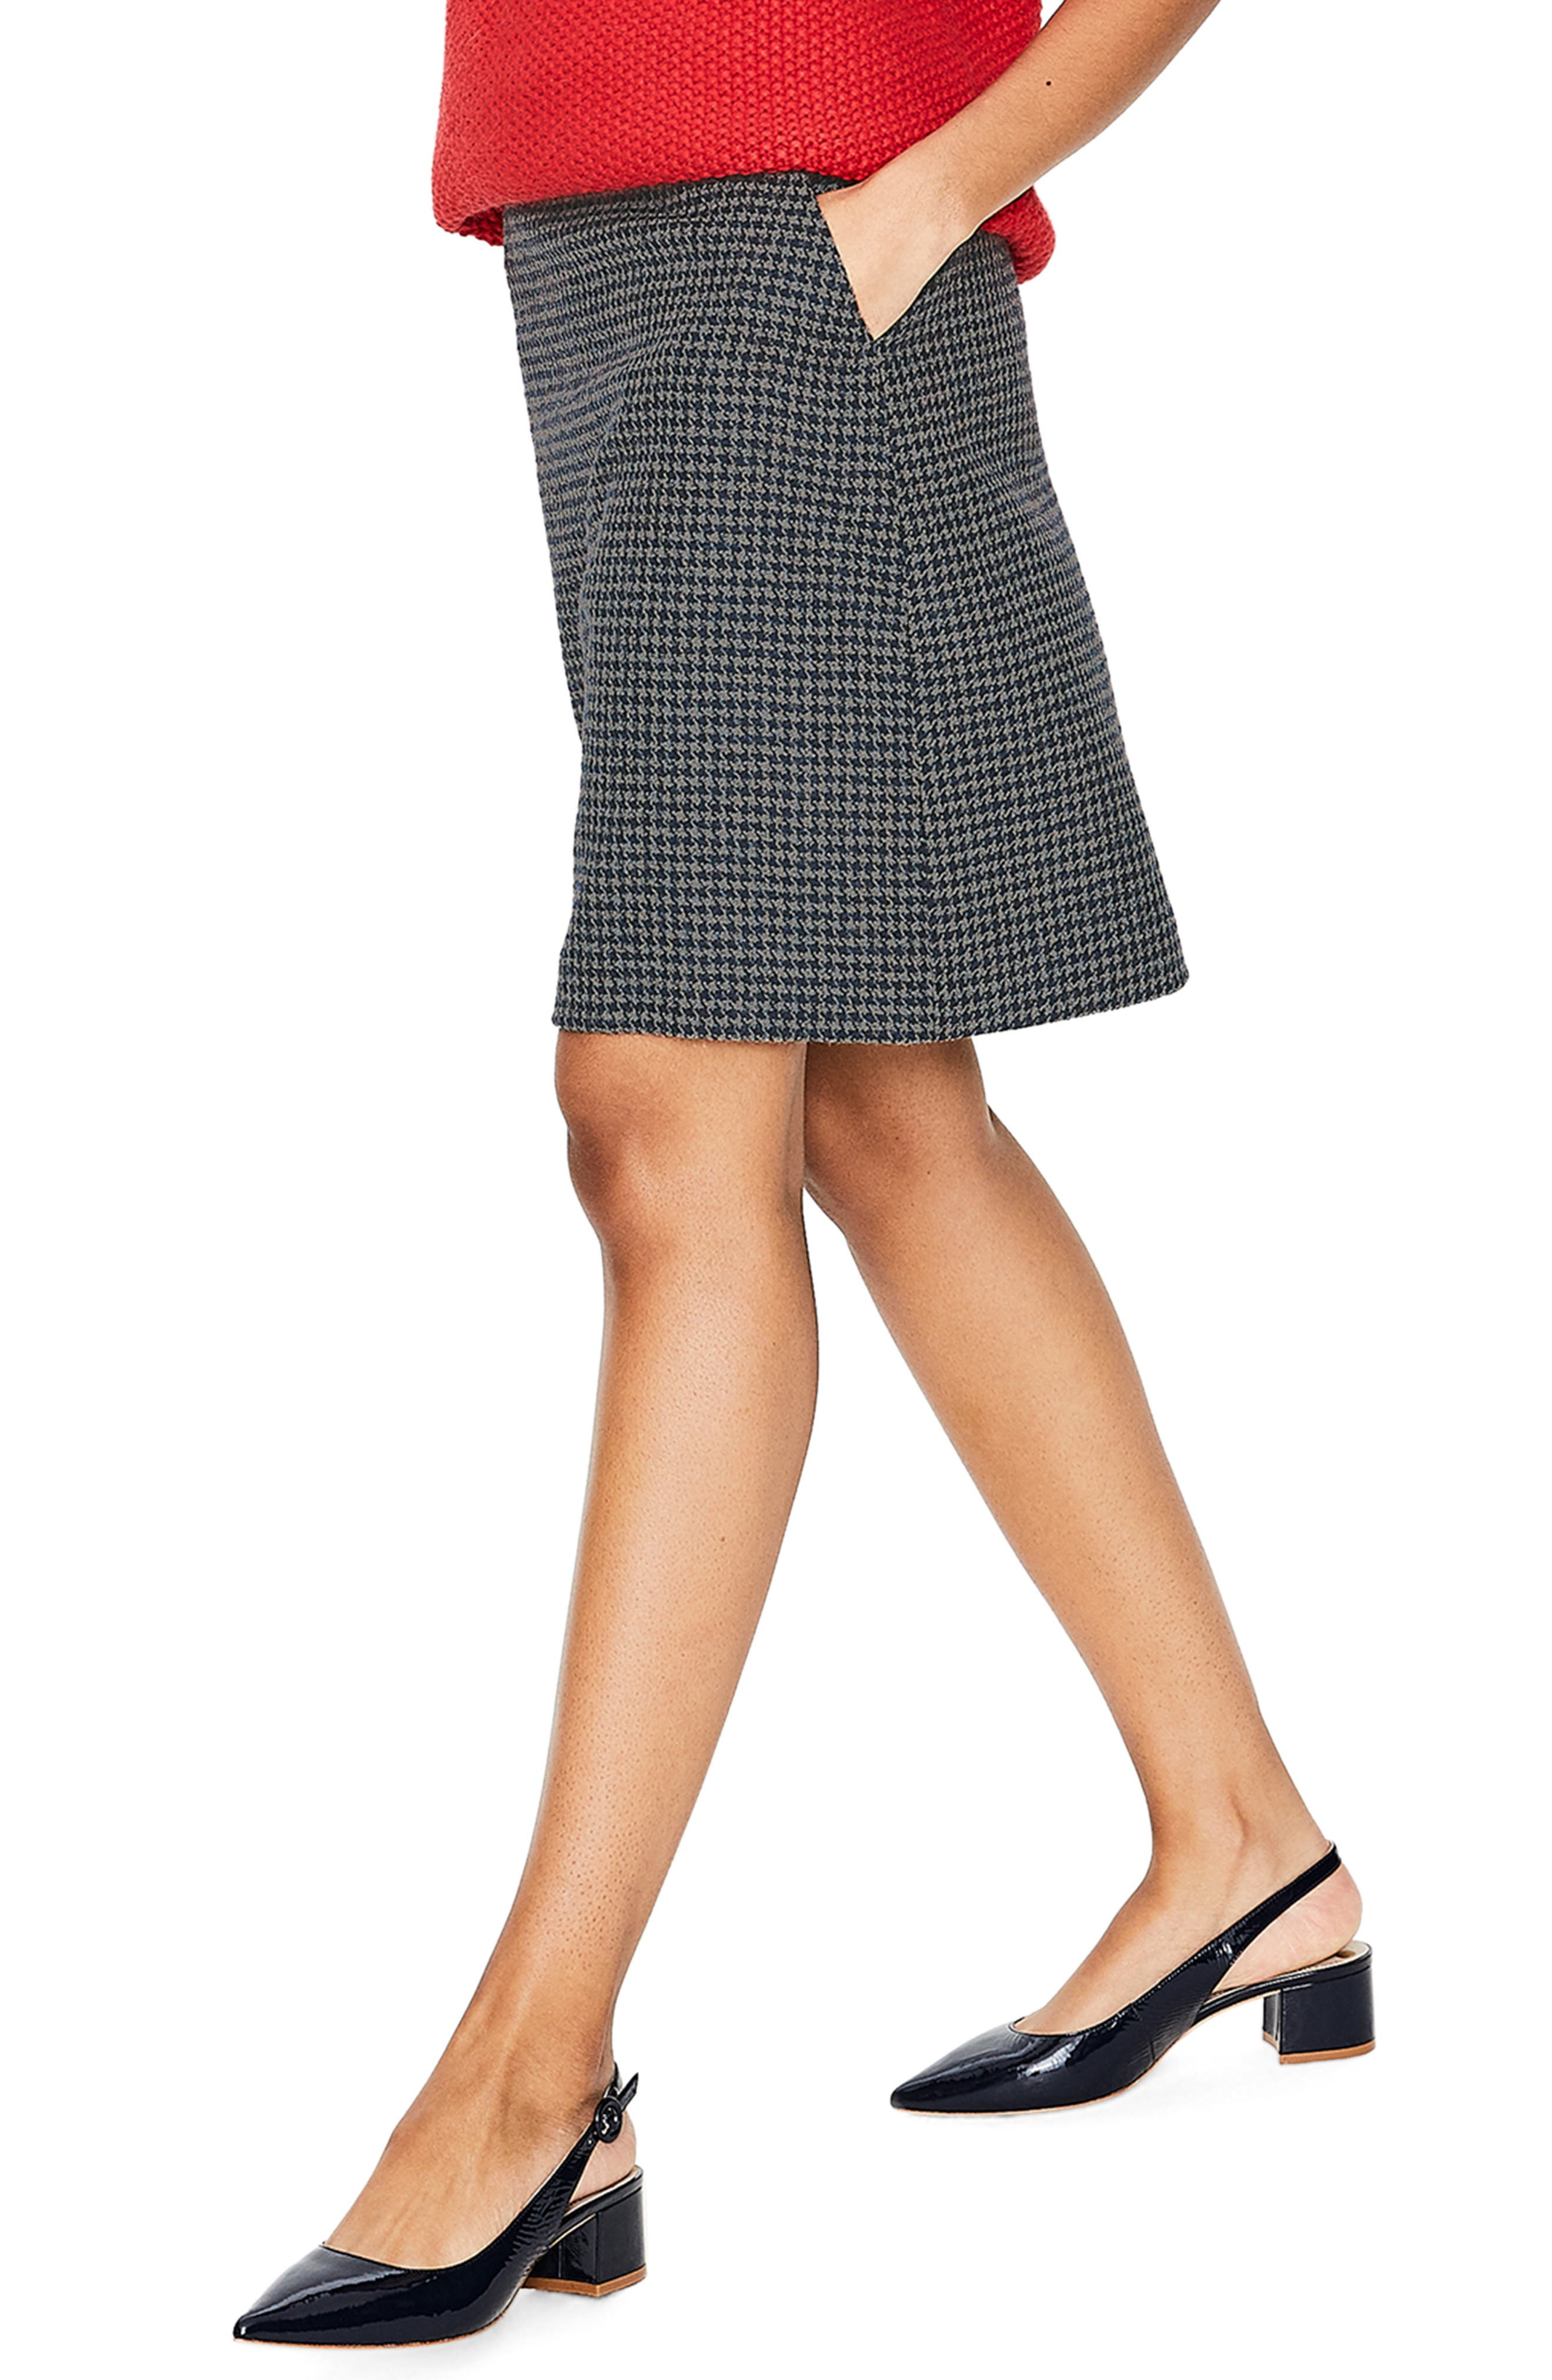 British Tweed Wool Mini Skirt,                             Alternate thumbnail 3, color,                             NAVY/ GREY MARL PUPPYTOOTH